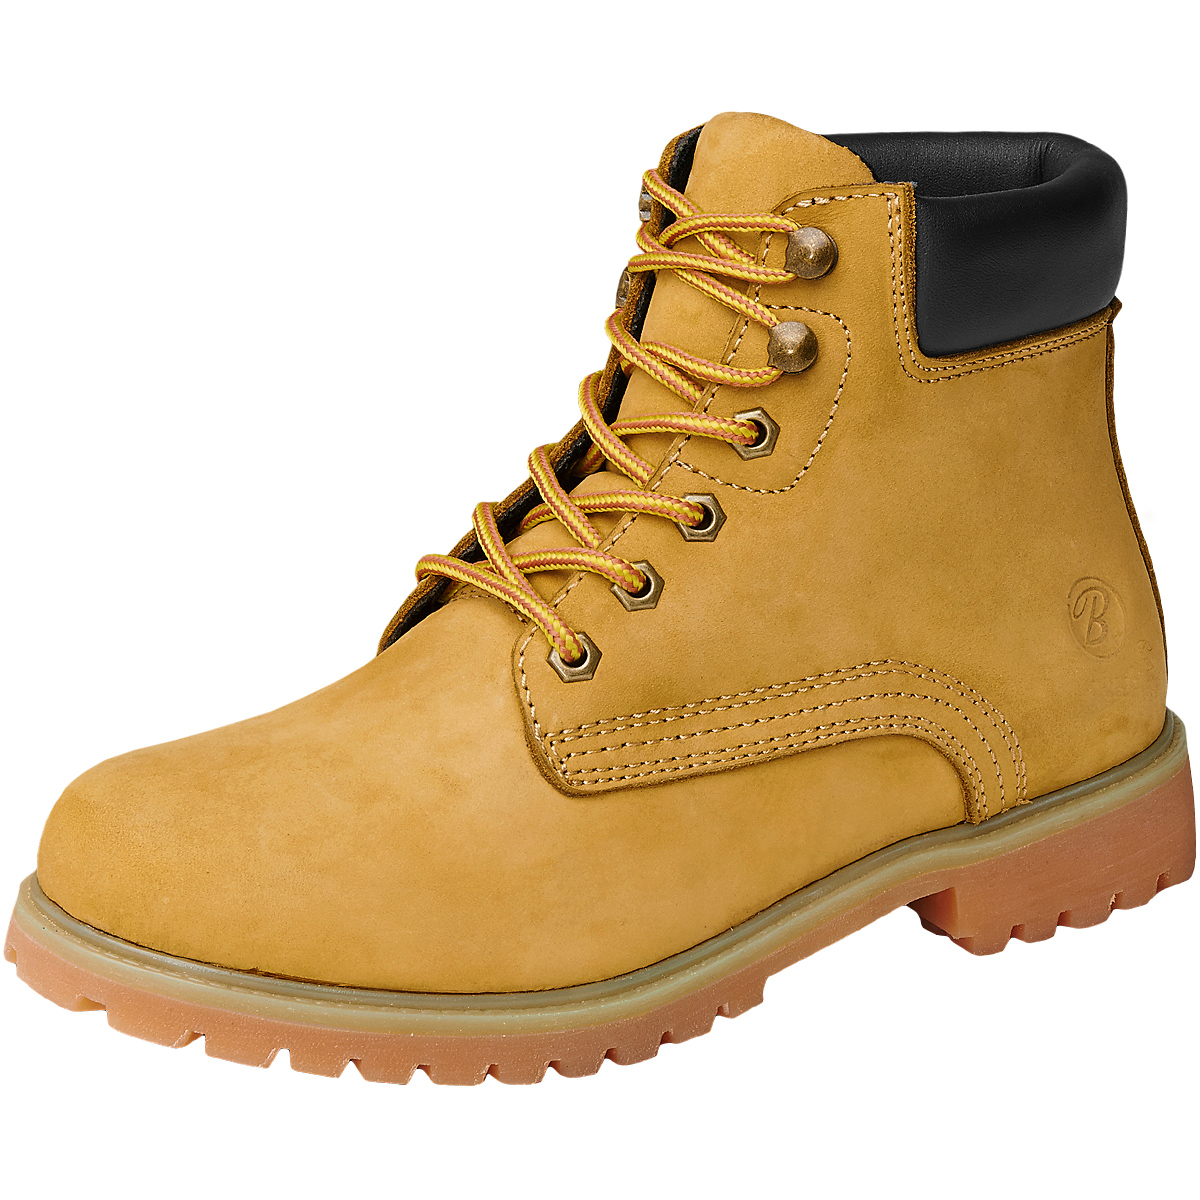 low priced dc22a f62fc Details about Brandit Kenyon Padded Leather Military Boots Army Patrol Mens  Footwear Camel